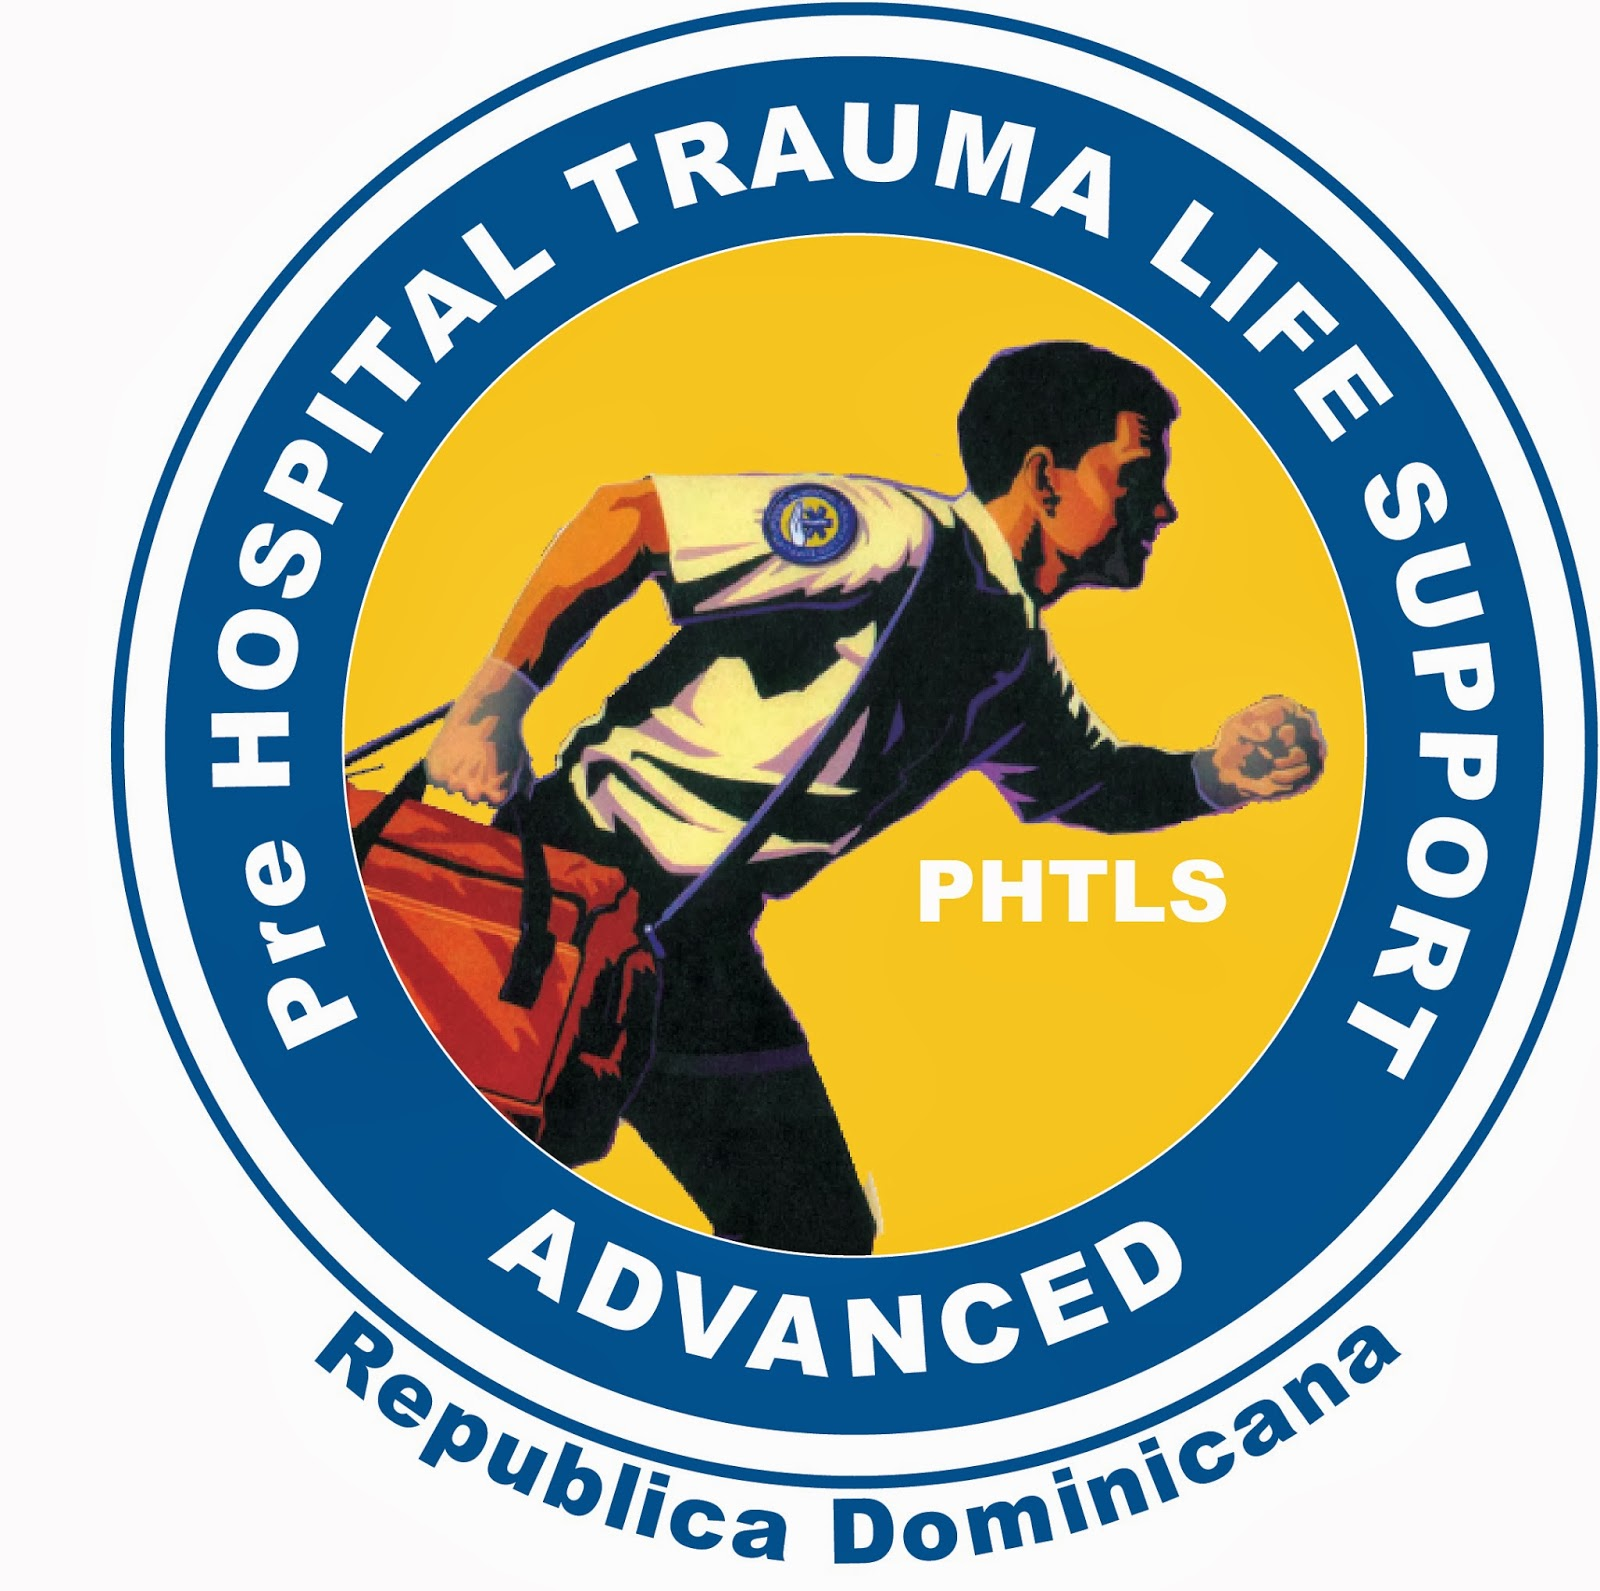 PHTLS Republica Dominicana